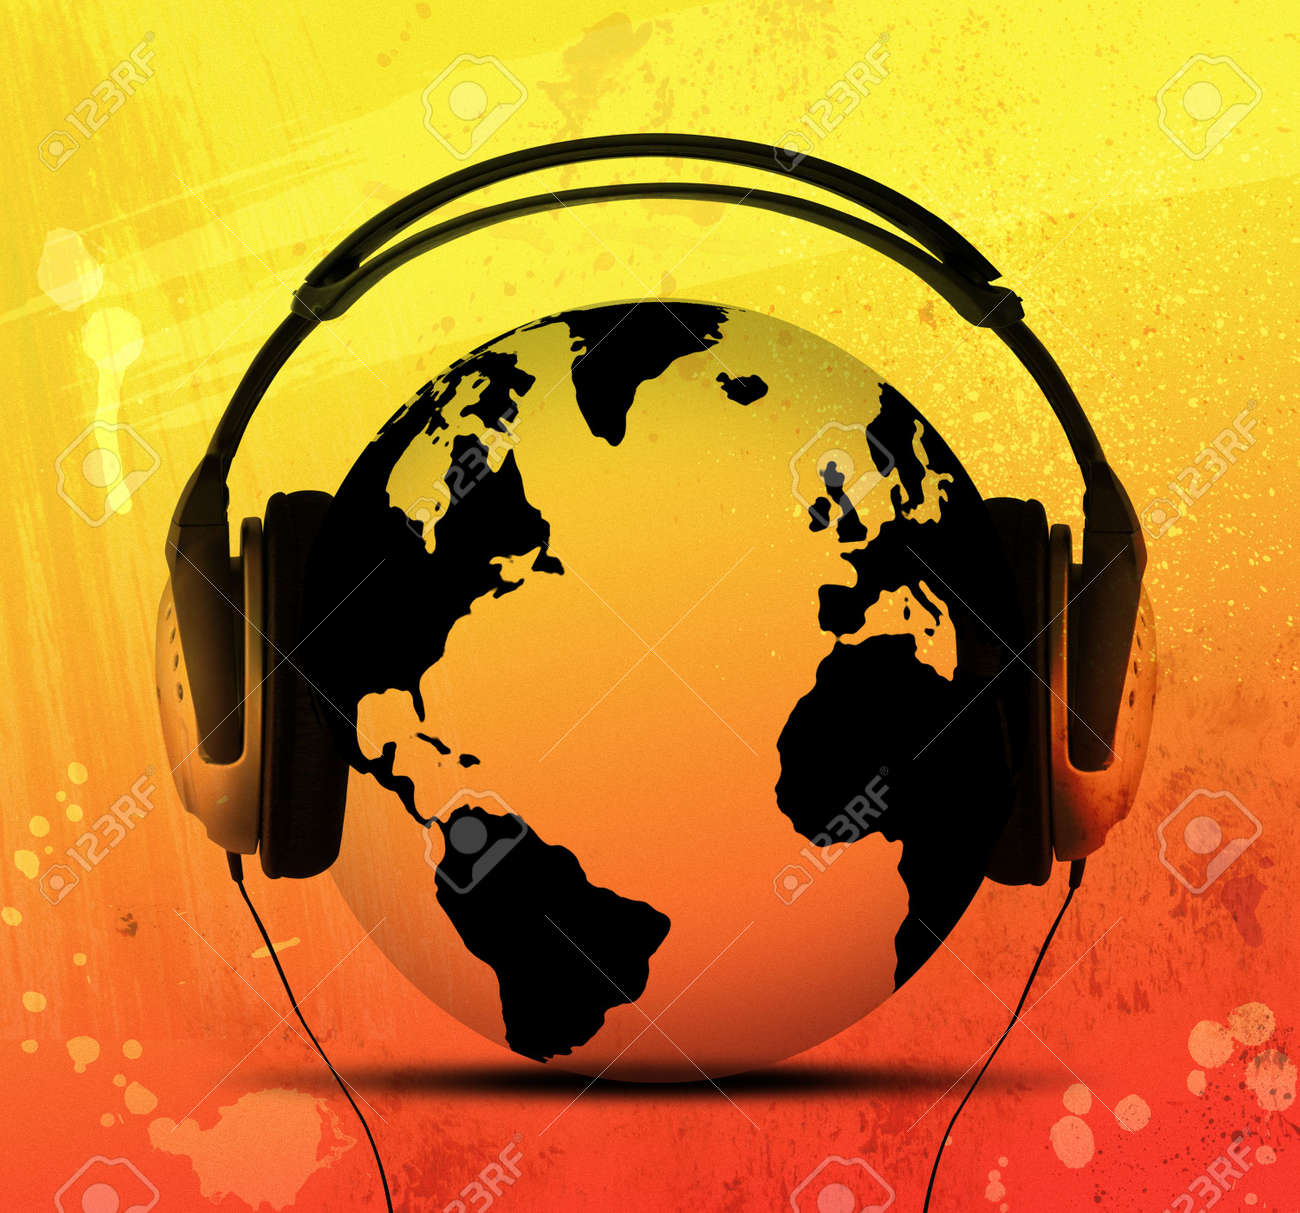 World Of Music Stock Photo, Picture And Royalty Free Image. Image ...